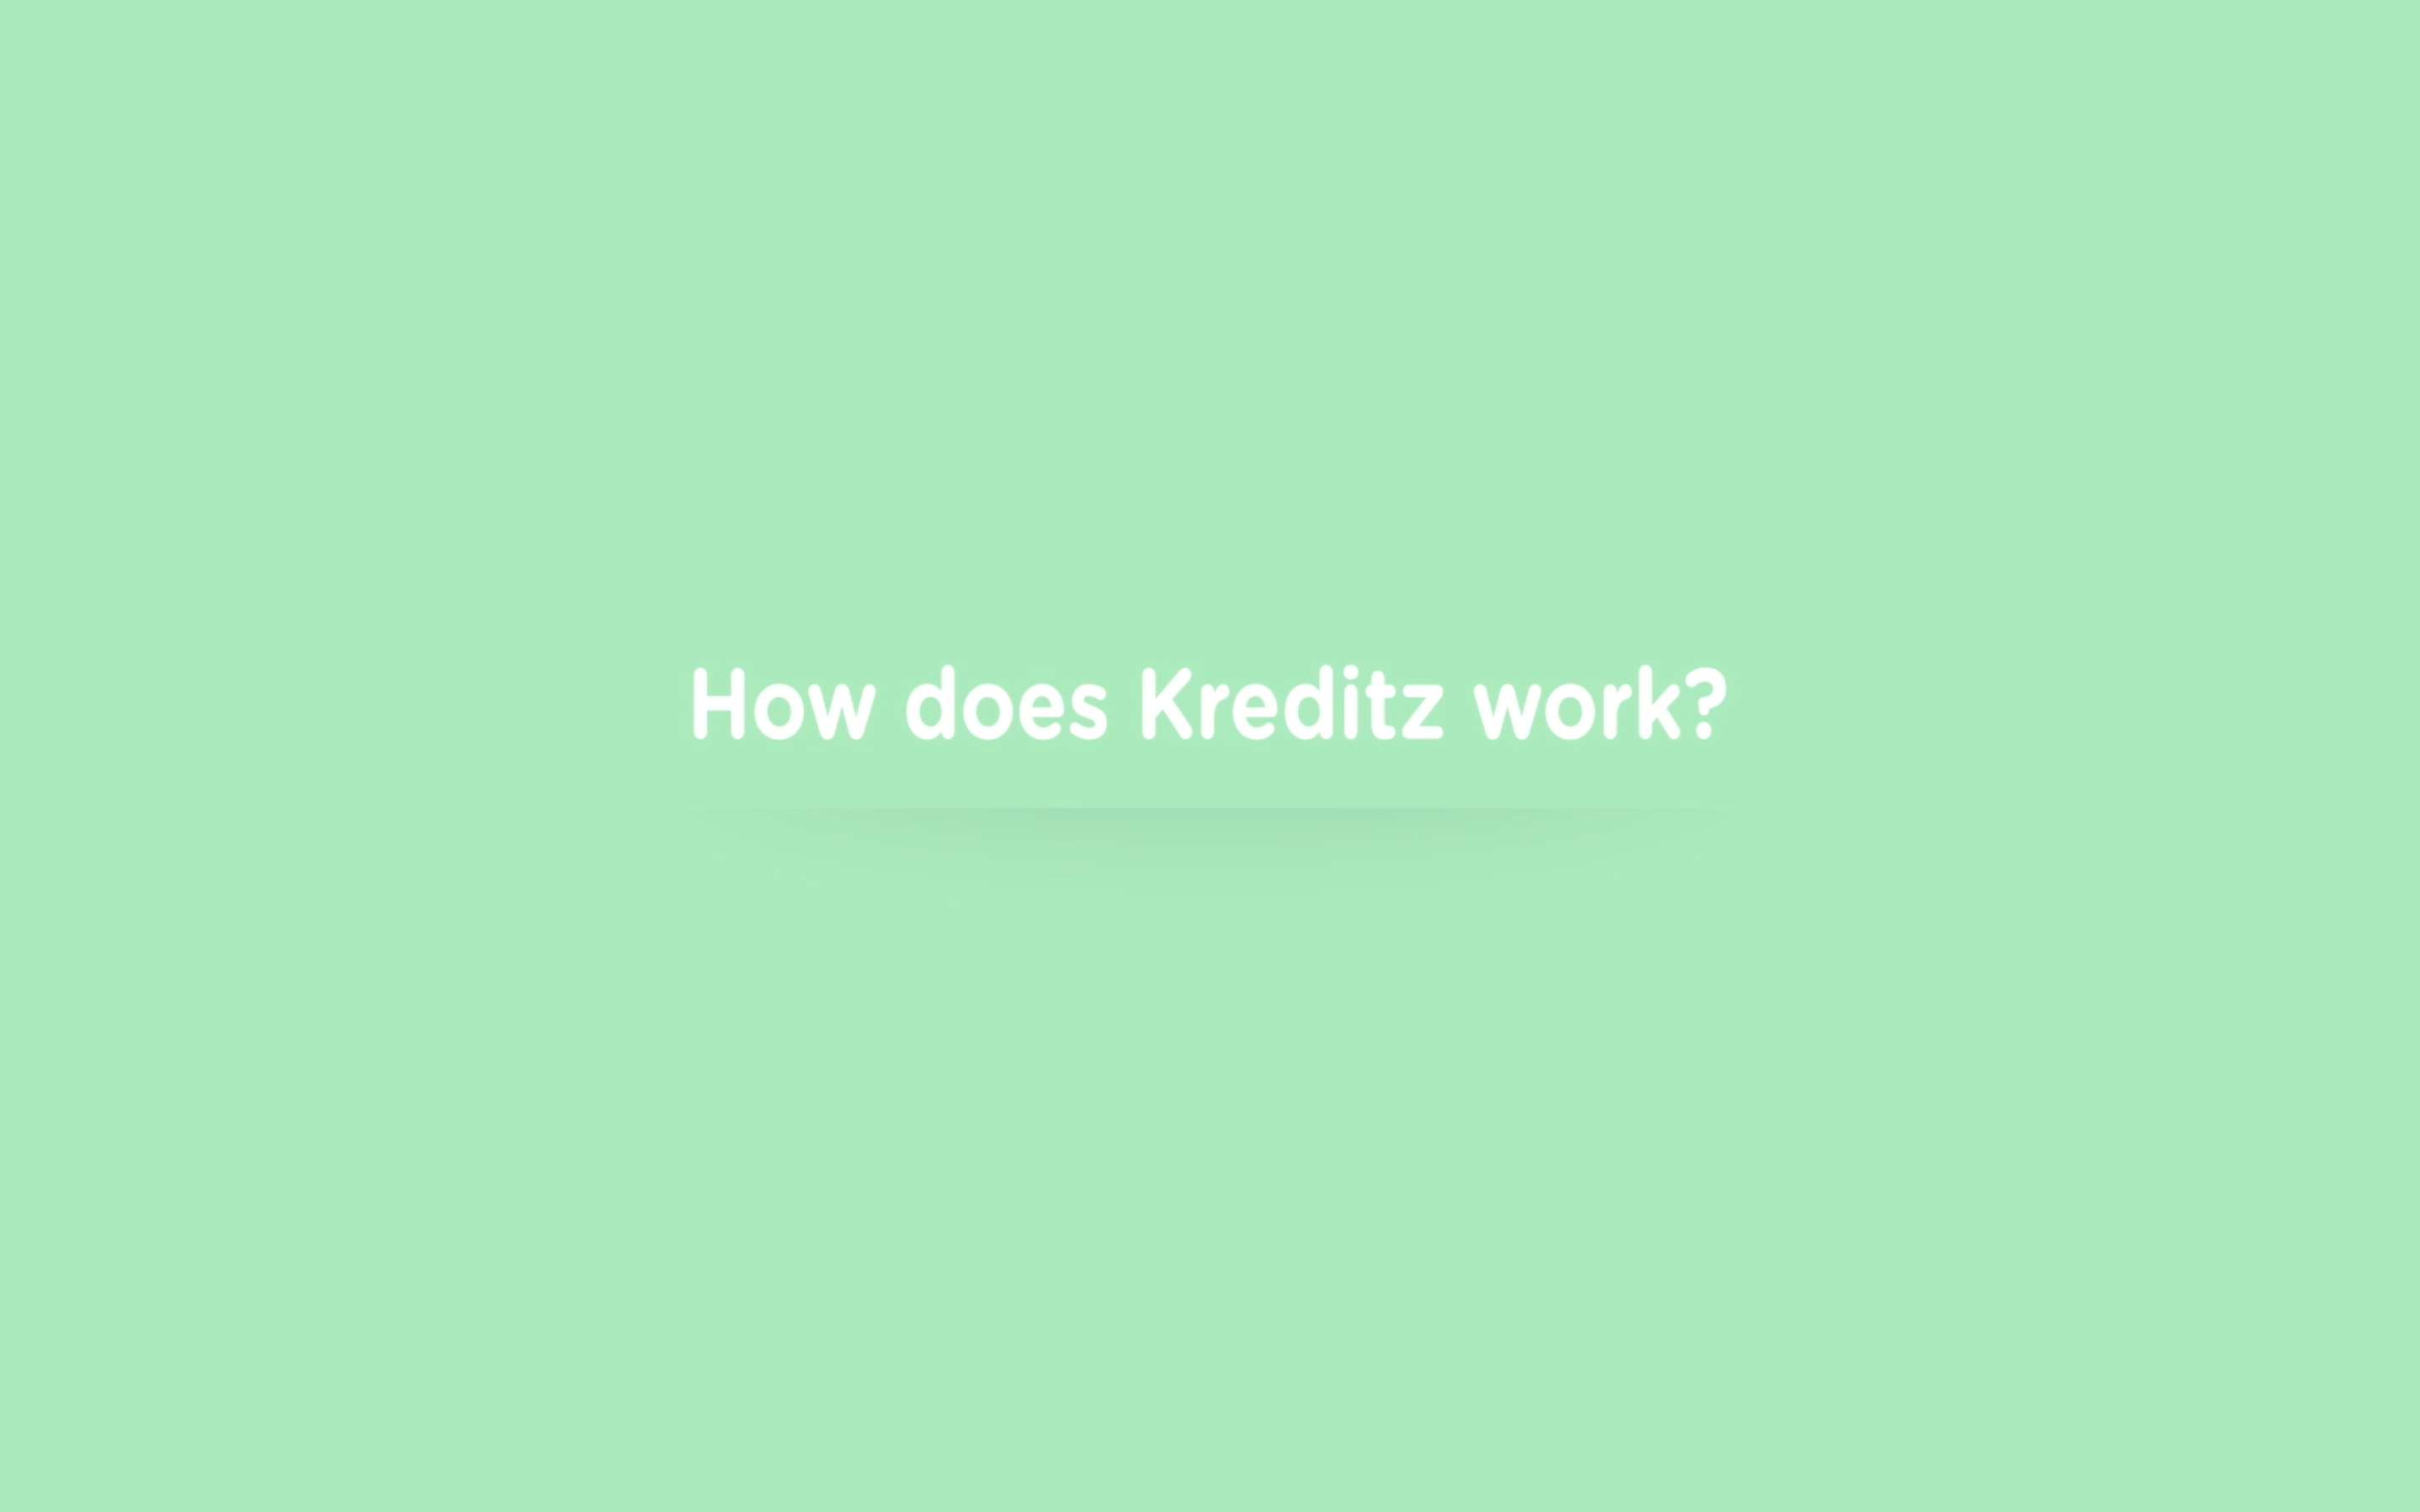 Kreditz Animated Explainer Video by Storisell 9